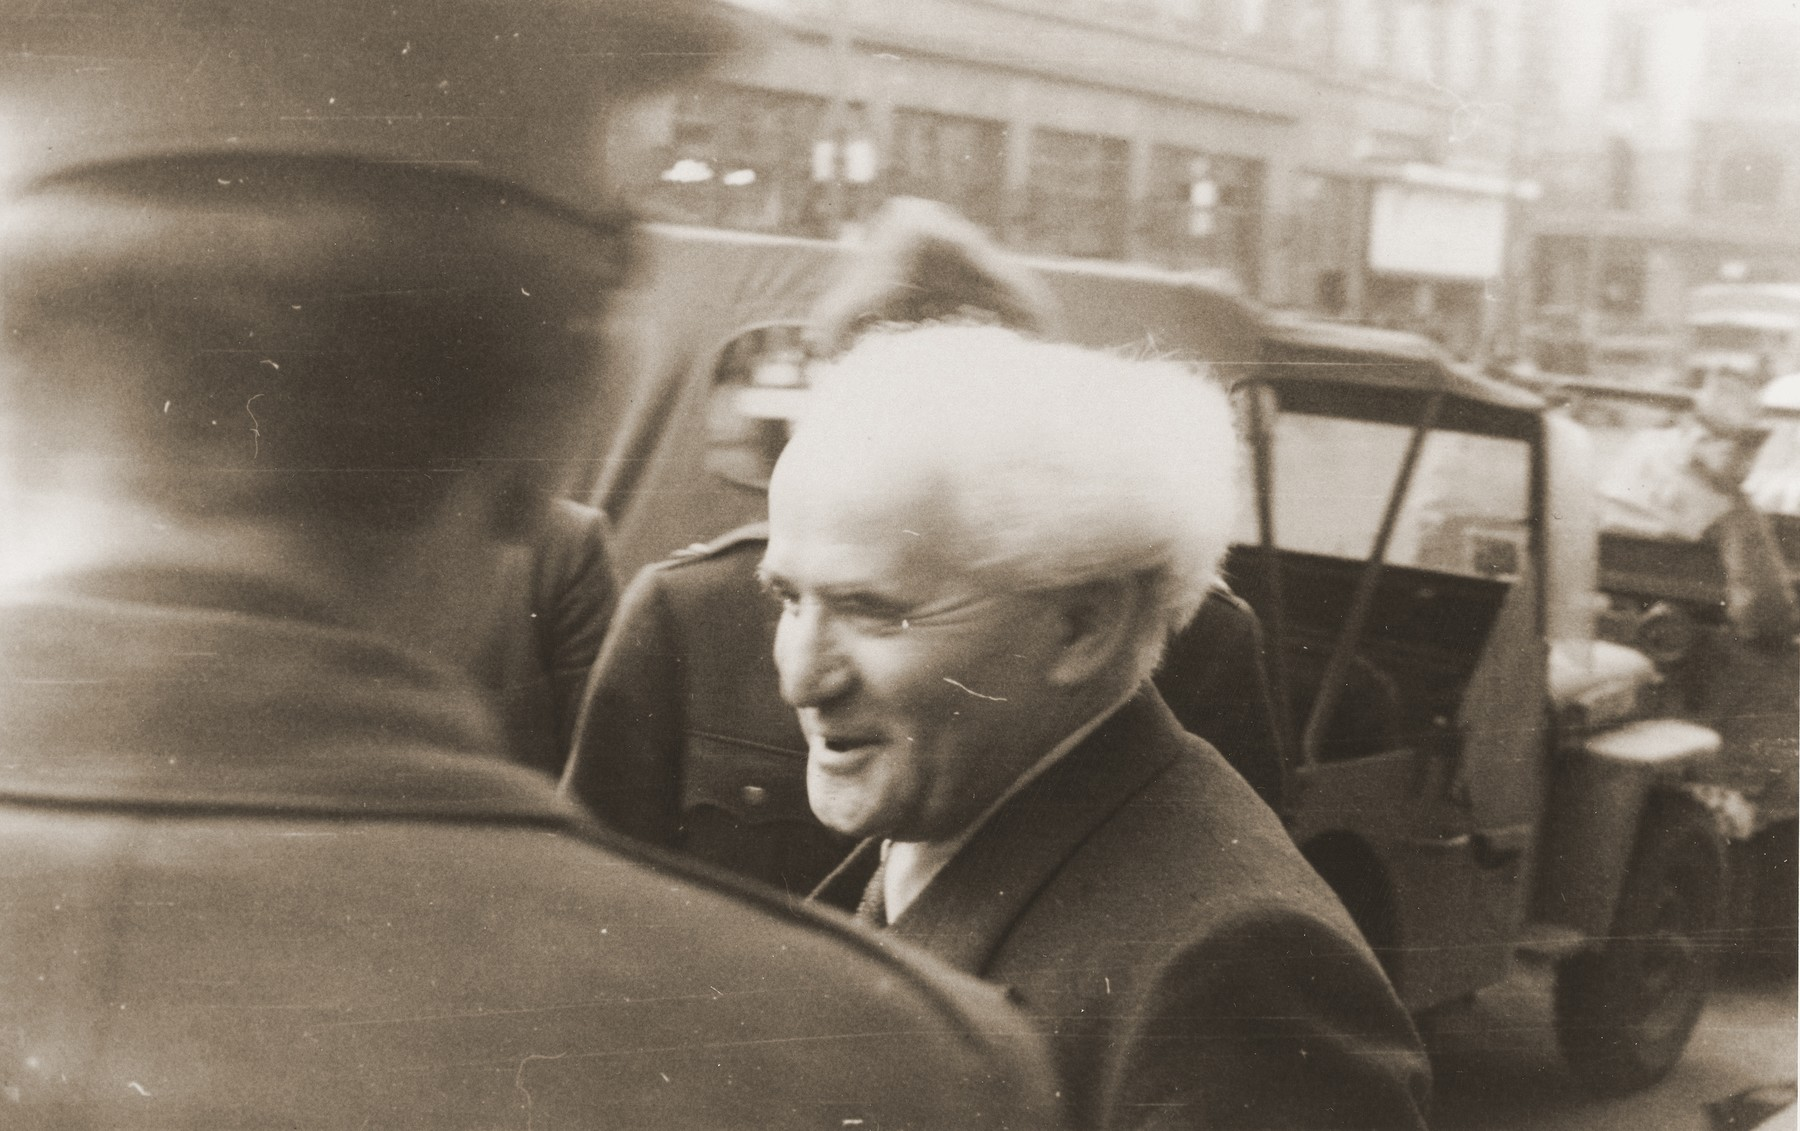 David Ben-Gurion is greeted by Chaim Hoffmann (with his back to the camera) and others during an official visit to the American zone of Germany.    Ben-Gurion is on his way to the Babenhausen bei Aschaffenburg displaced persons camp near Frankfurt.